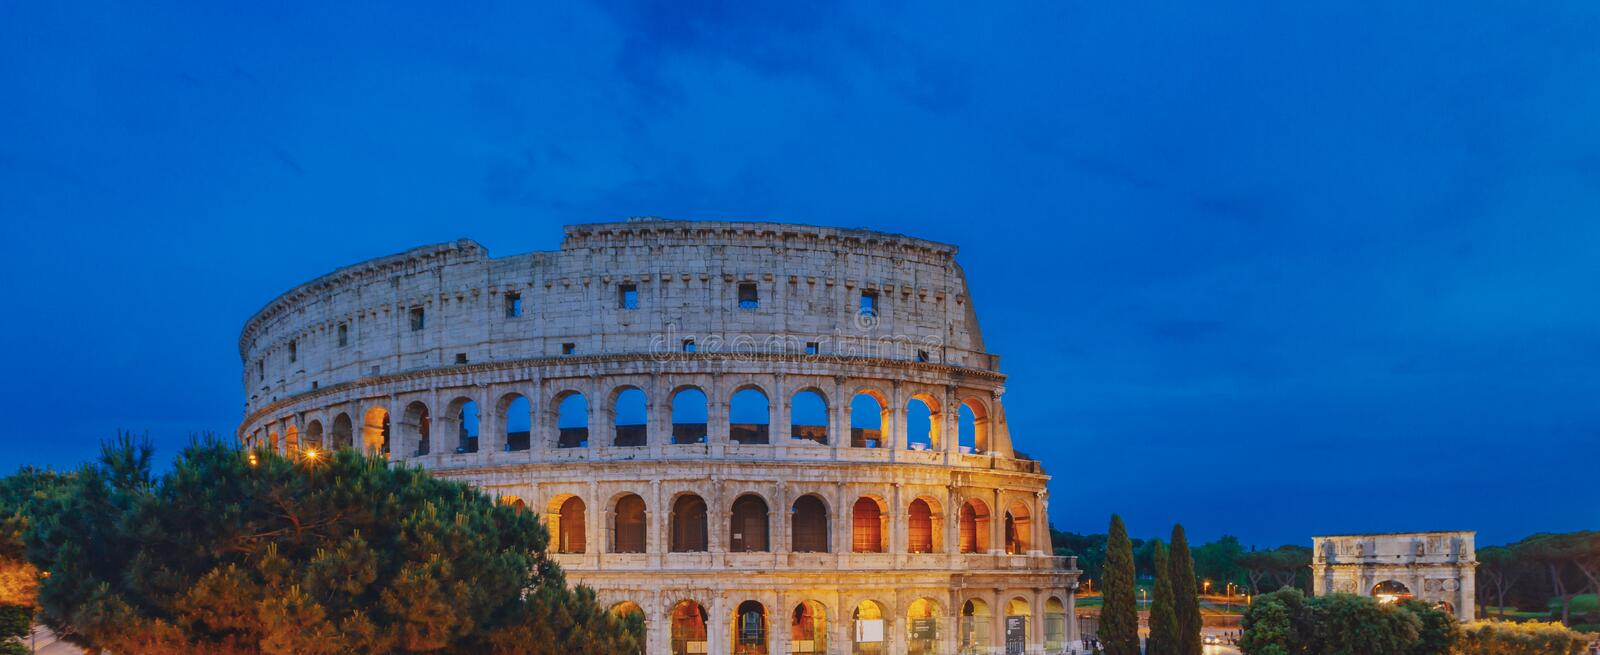 Panorama of Colosseum and Arch of Constantine under blue sky at dusk in Rome, Italy royalty free stock photo